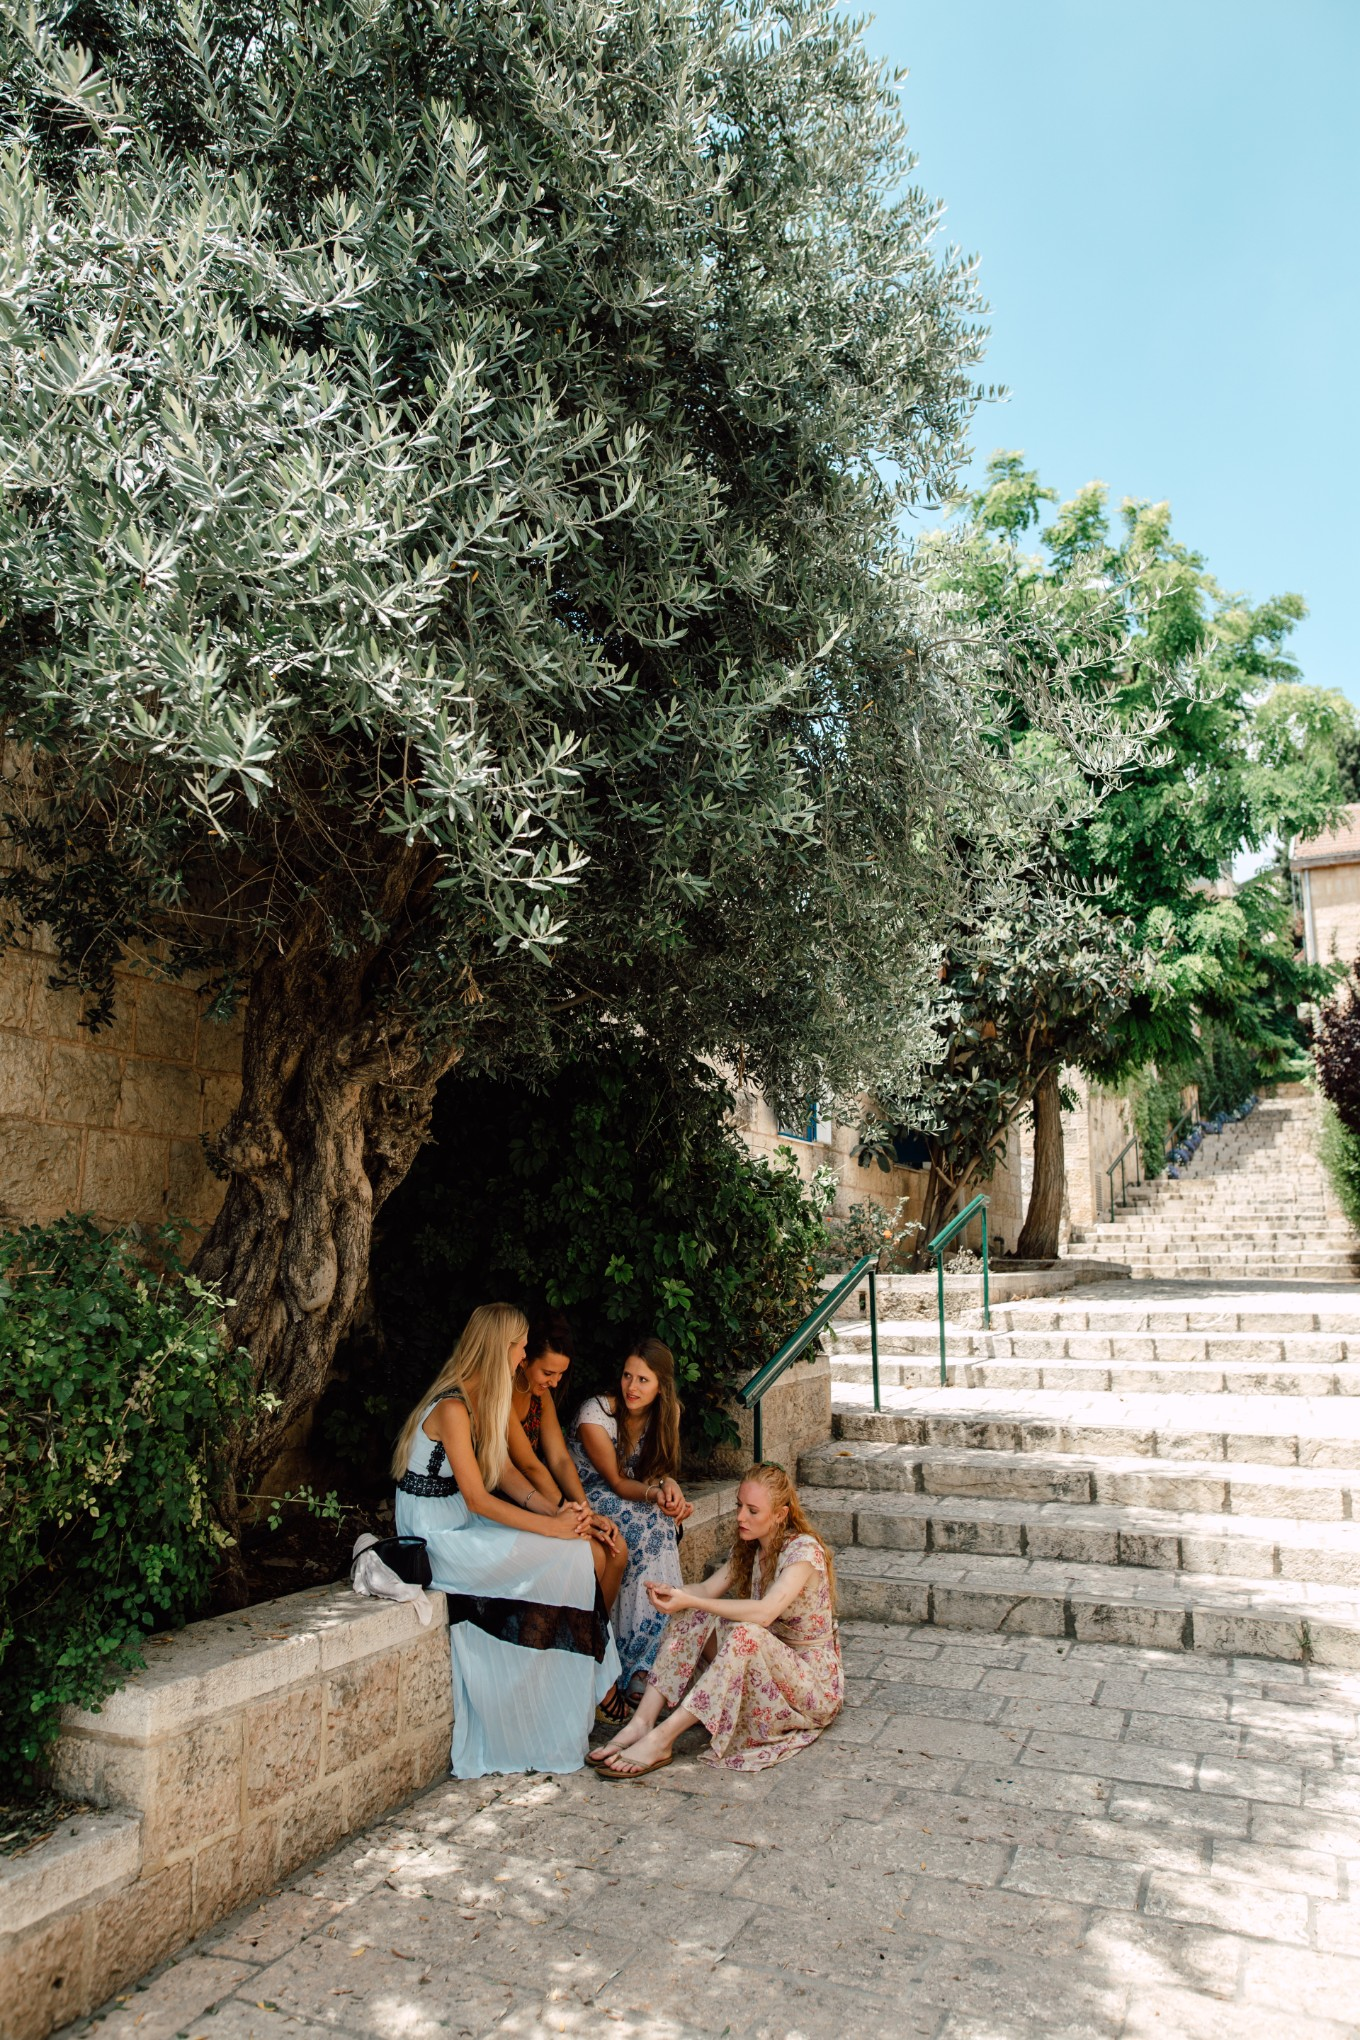 Jerusalem-Pia-Anna-Christian-Wedding-Photography-AD-T-13.jpg